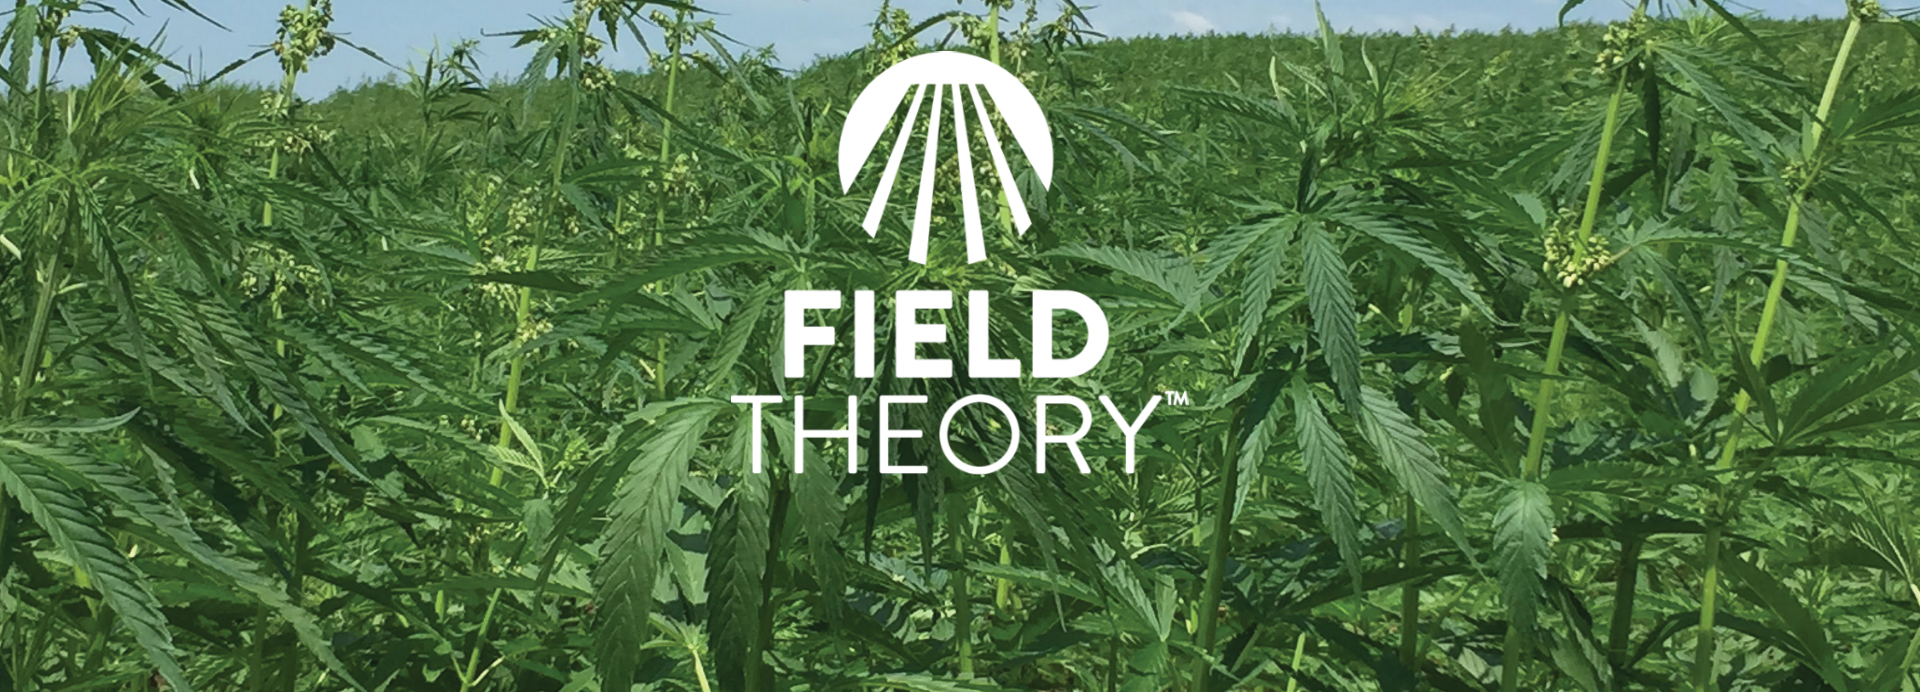 Field Theory Hemp